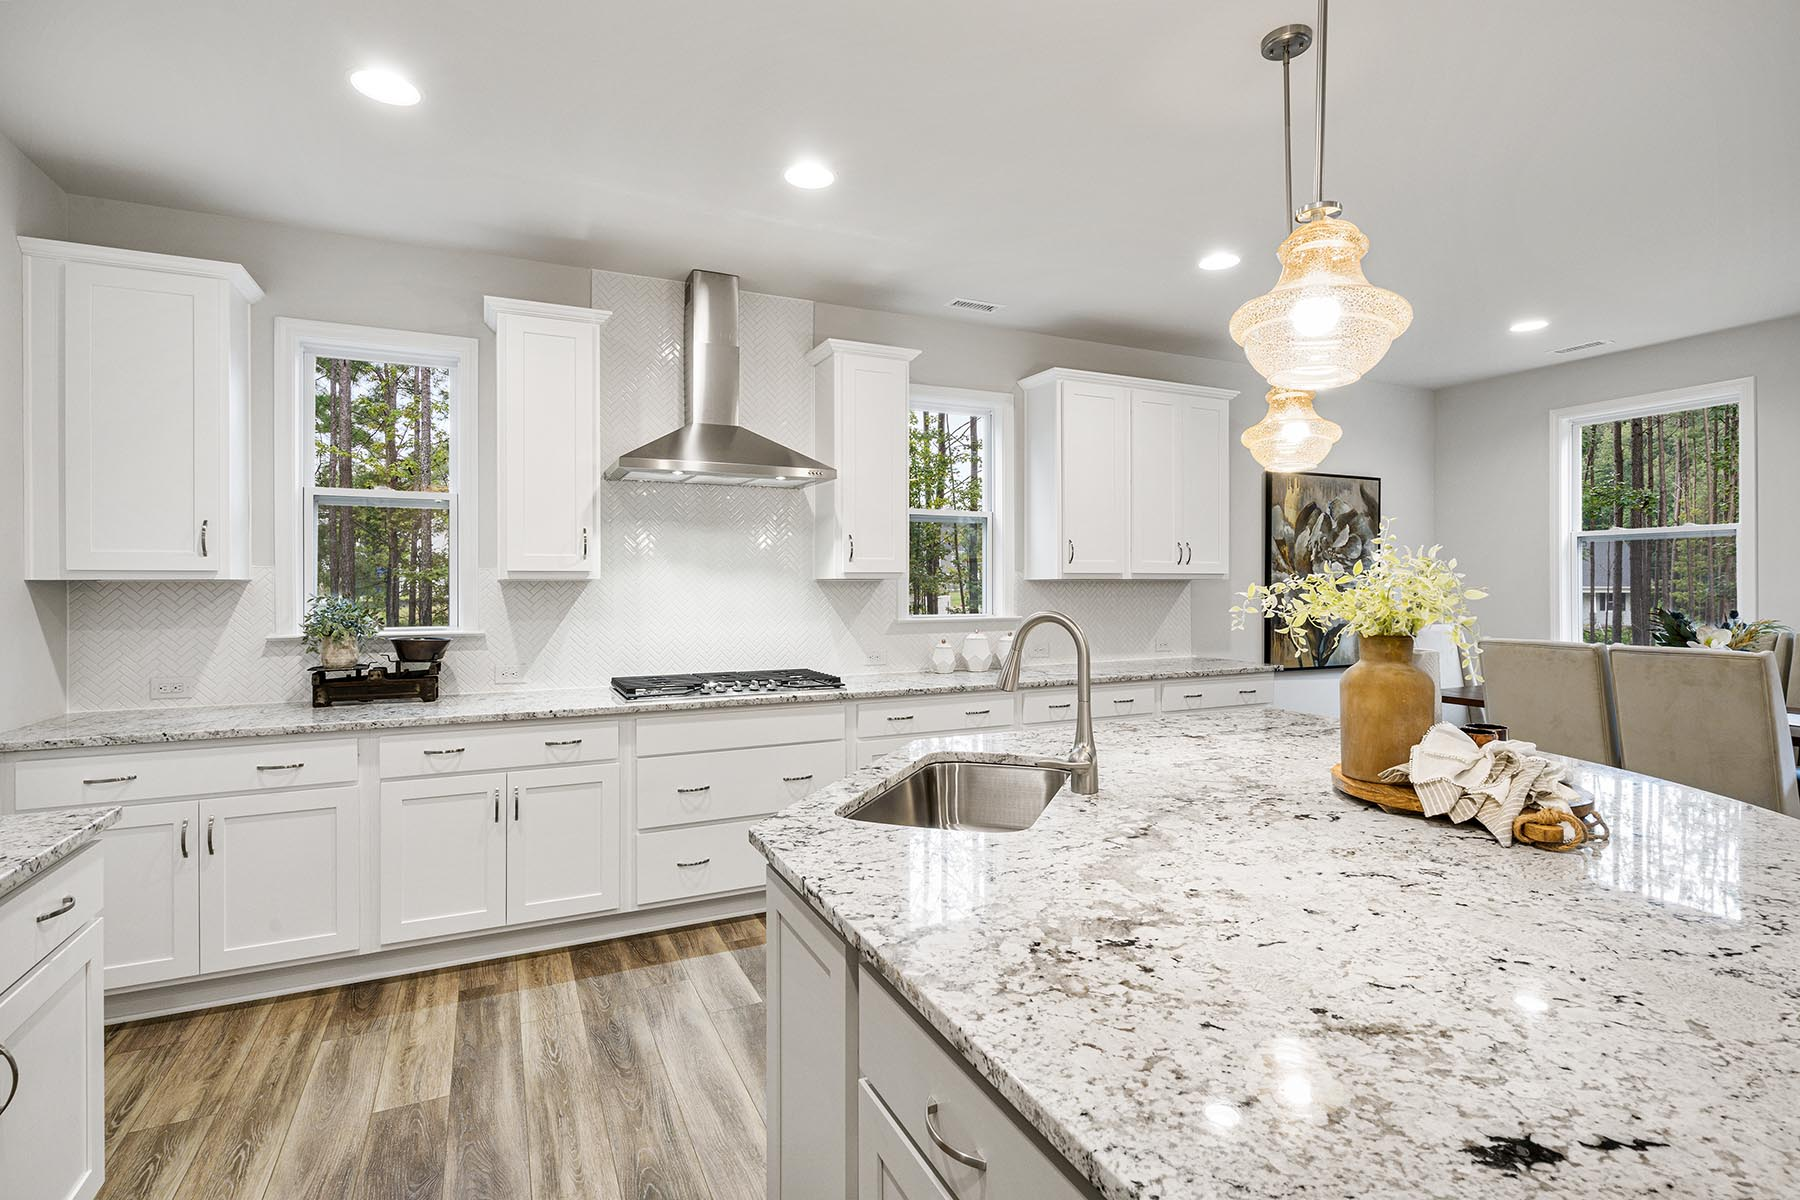 Kendrick Plan Kitchen at Portofino in Clayton North Carolina by Mattamy Homes